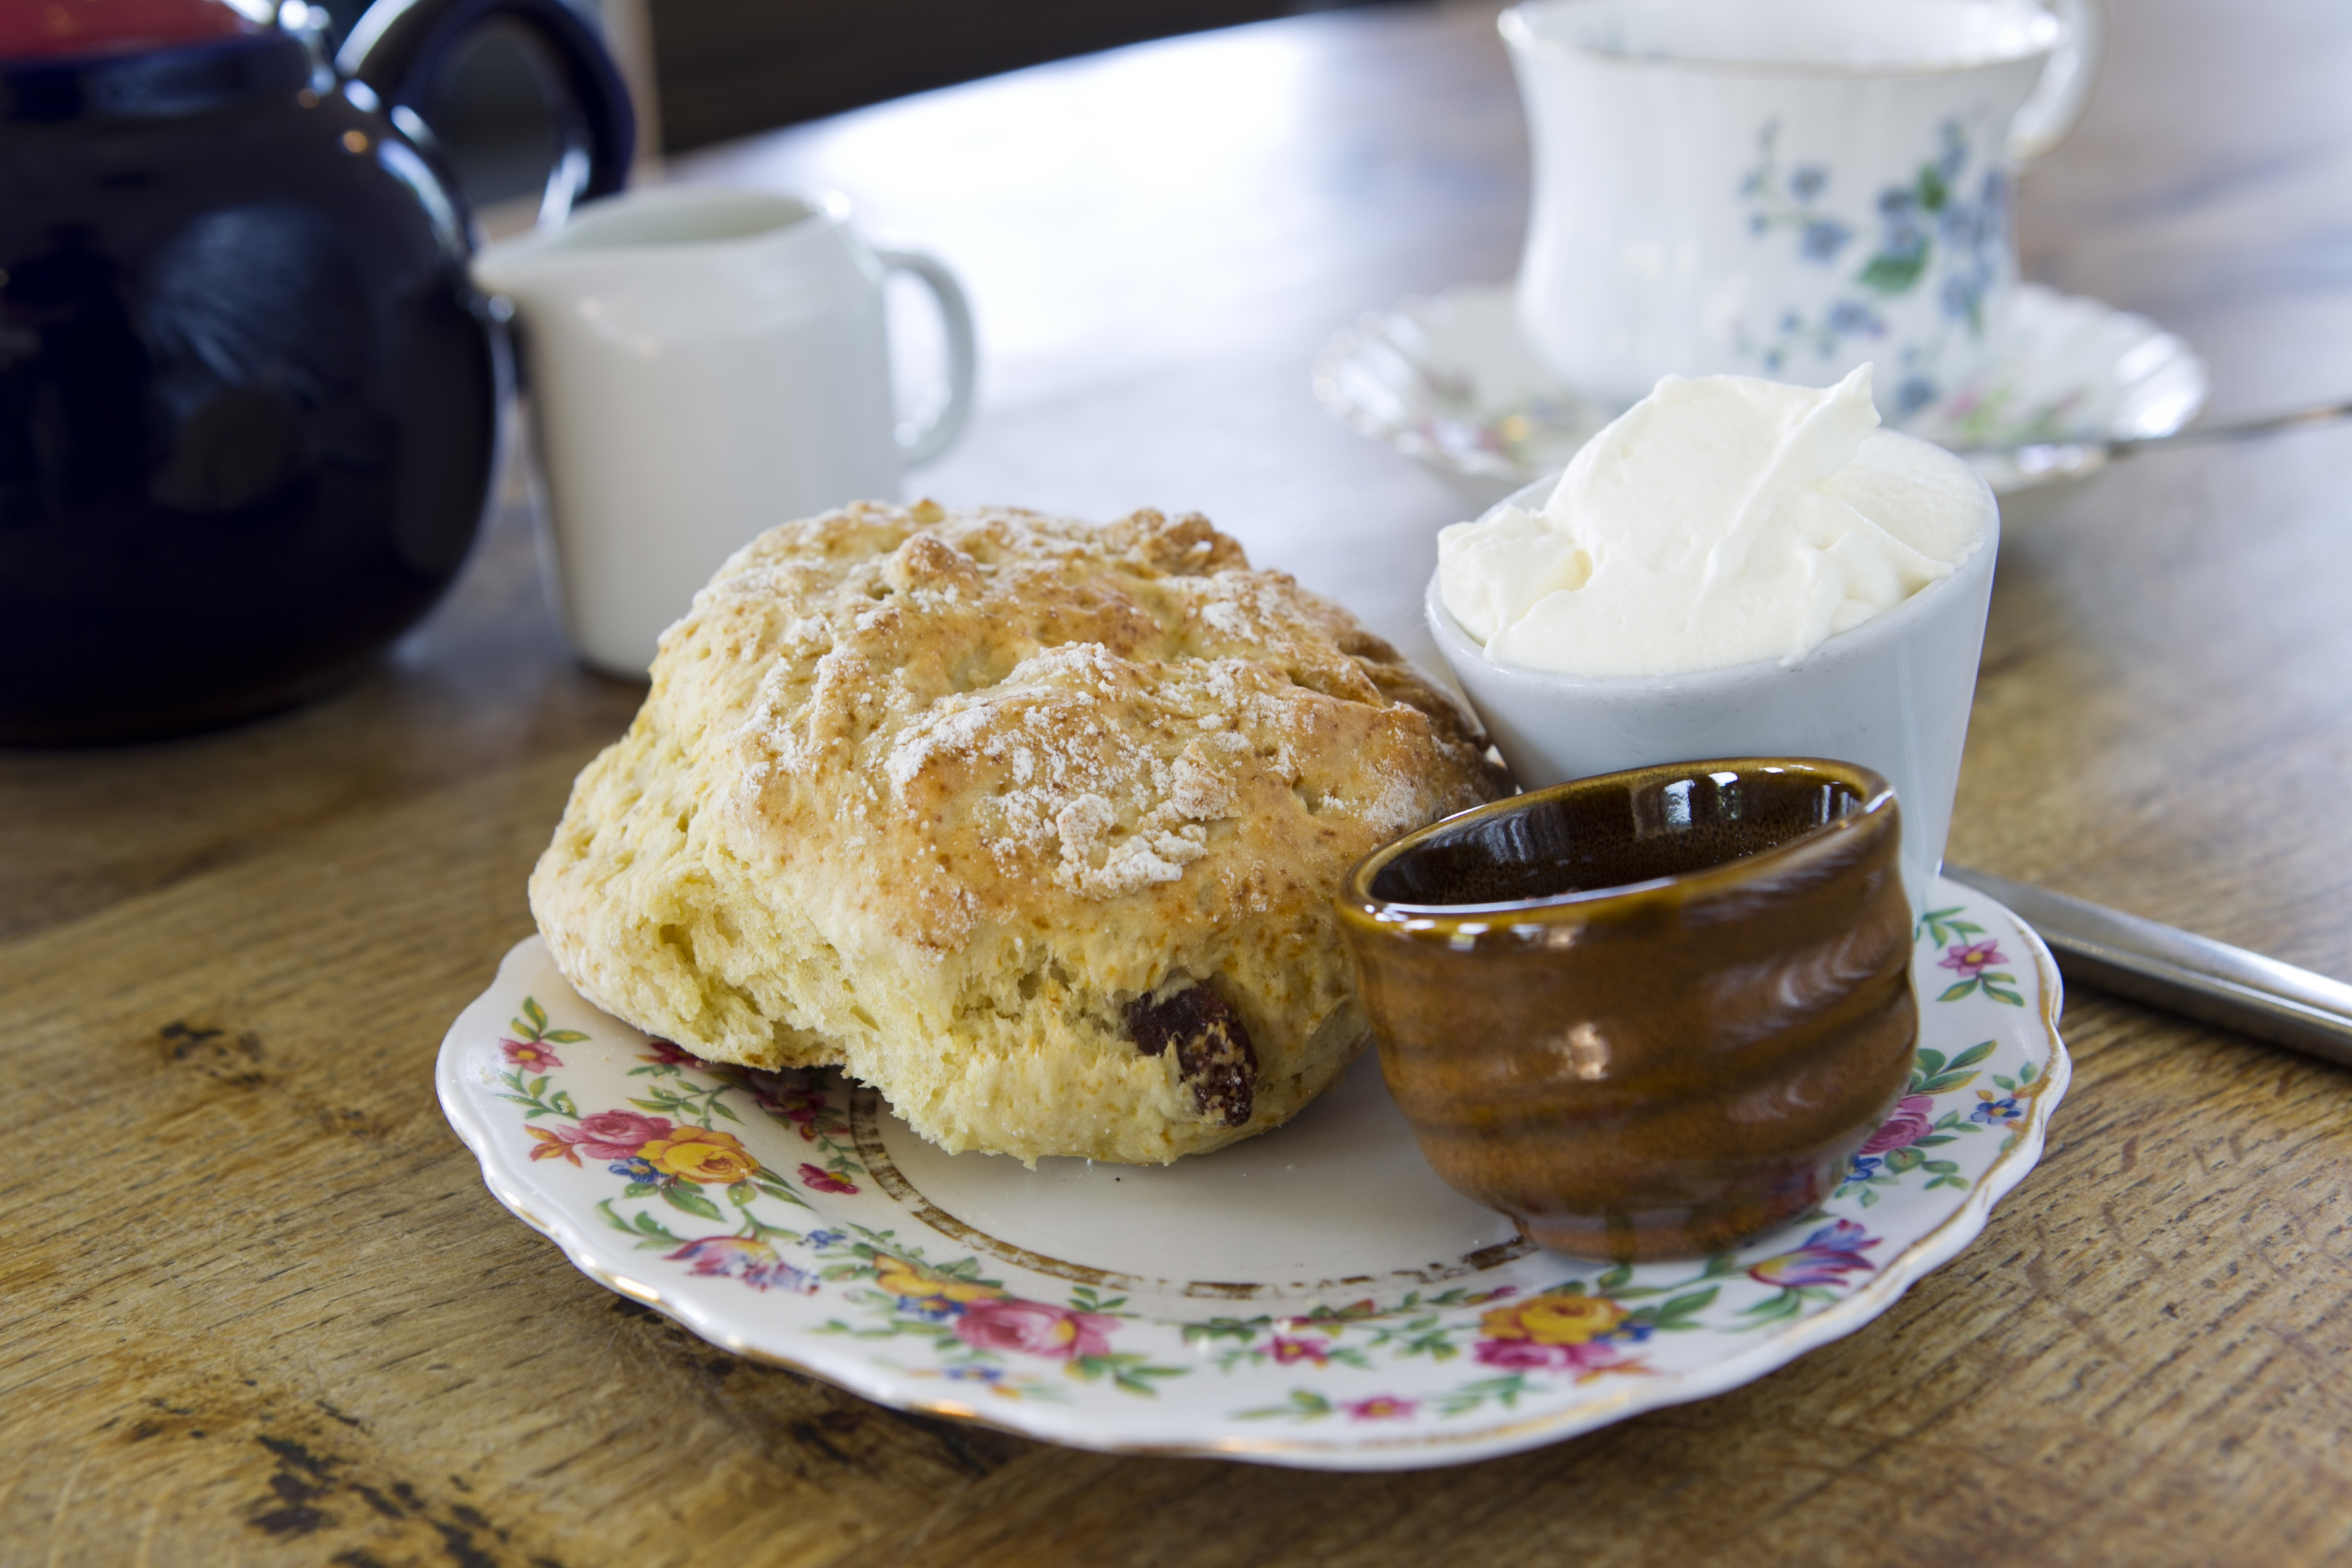 The recipes for the scones come from the owner's  grandmother's recipe book from the 1920s (Andrew Cawley / DC Thomson)